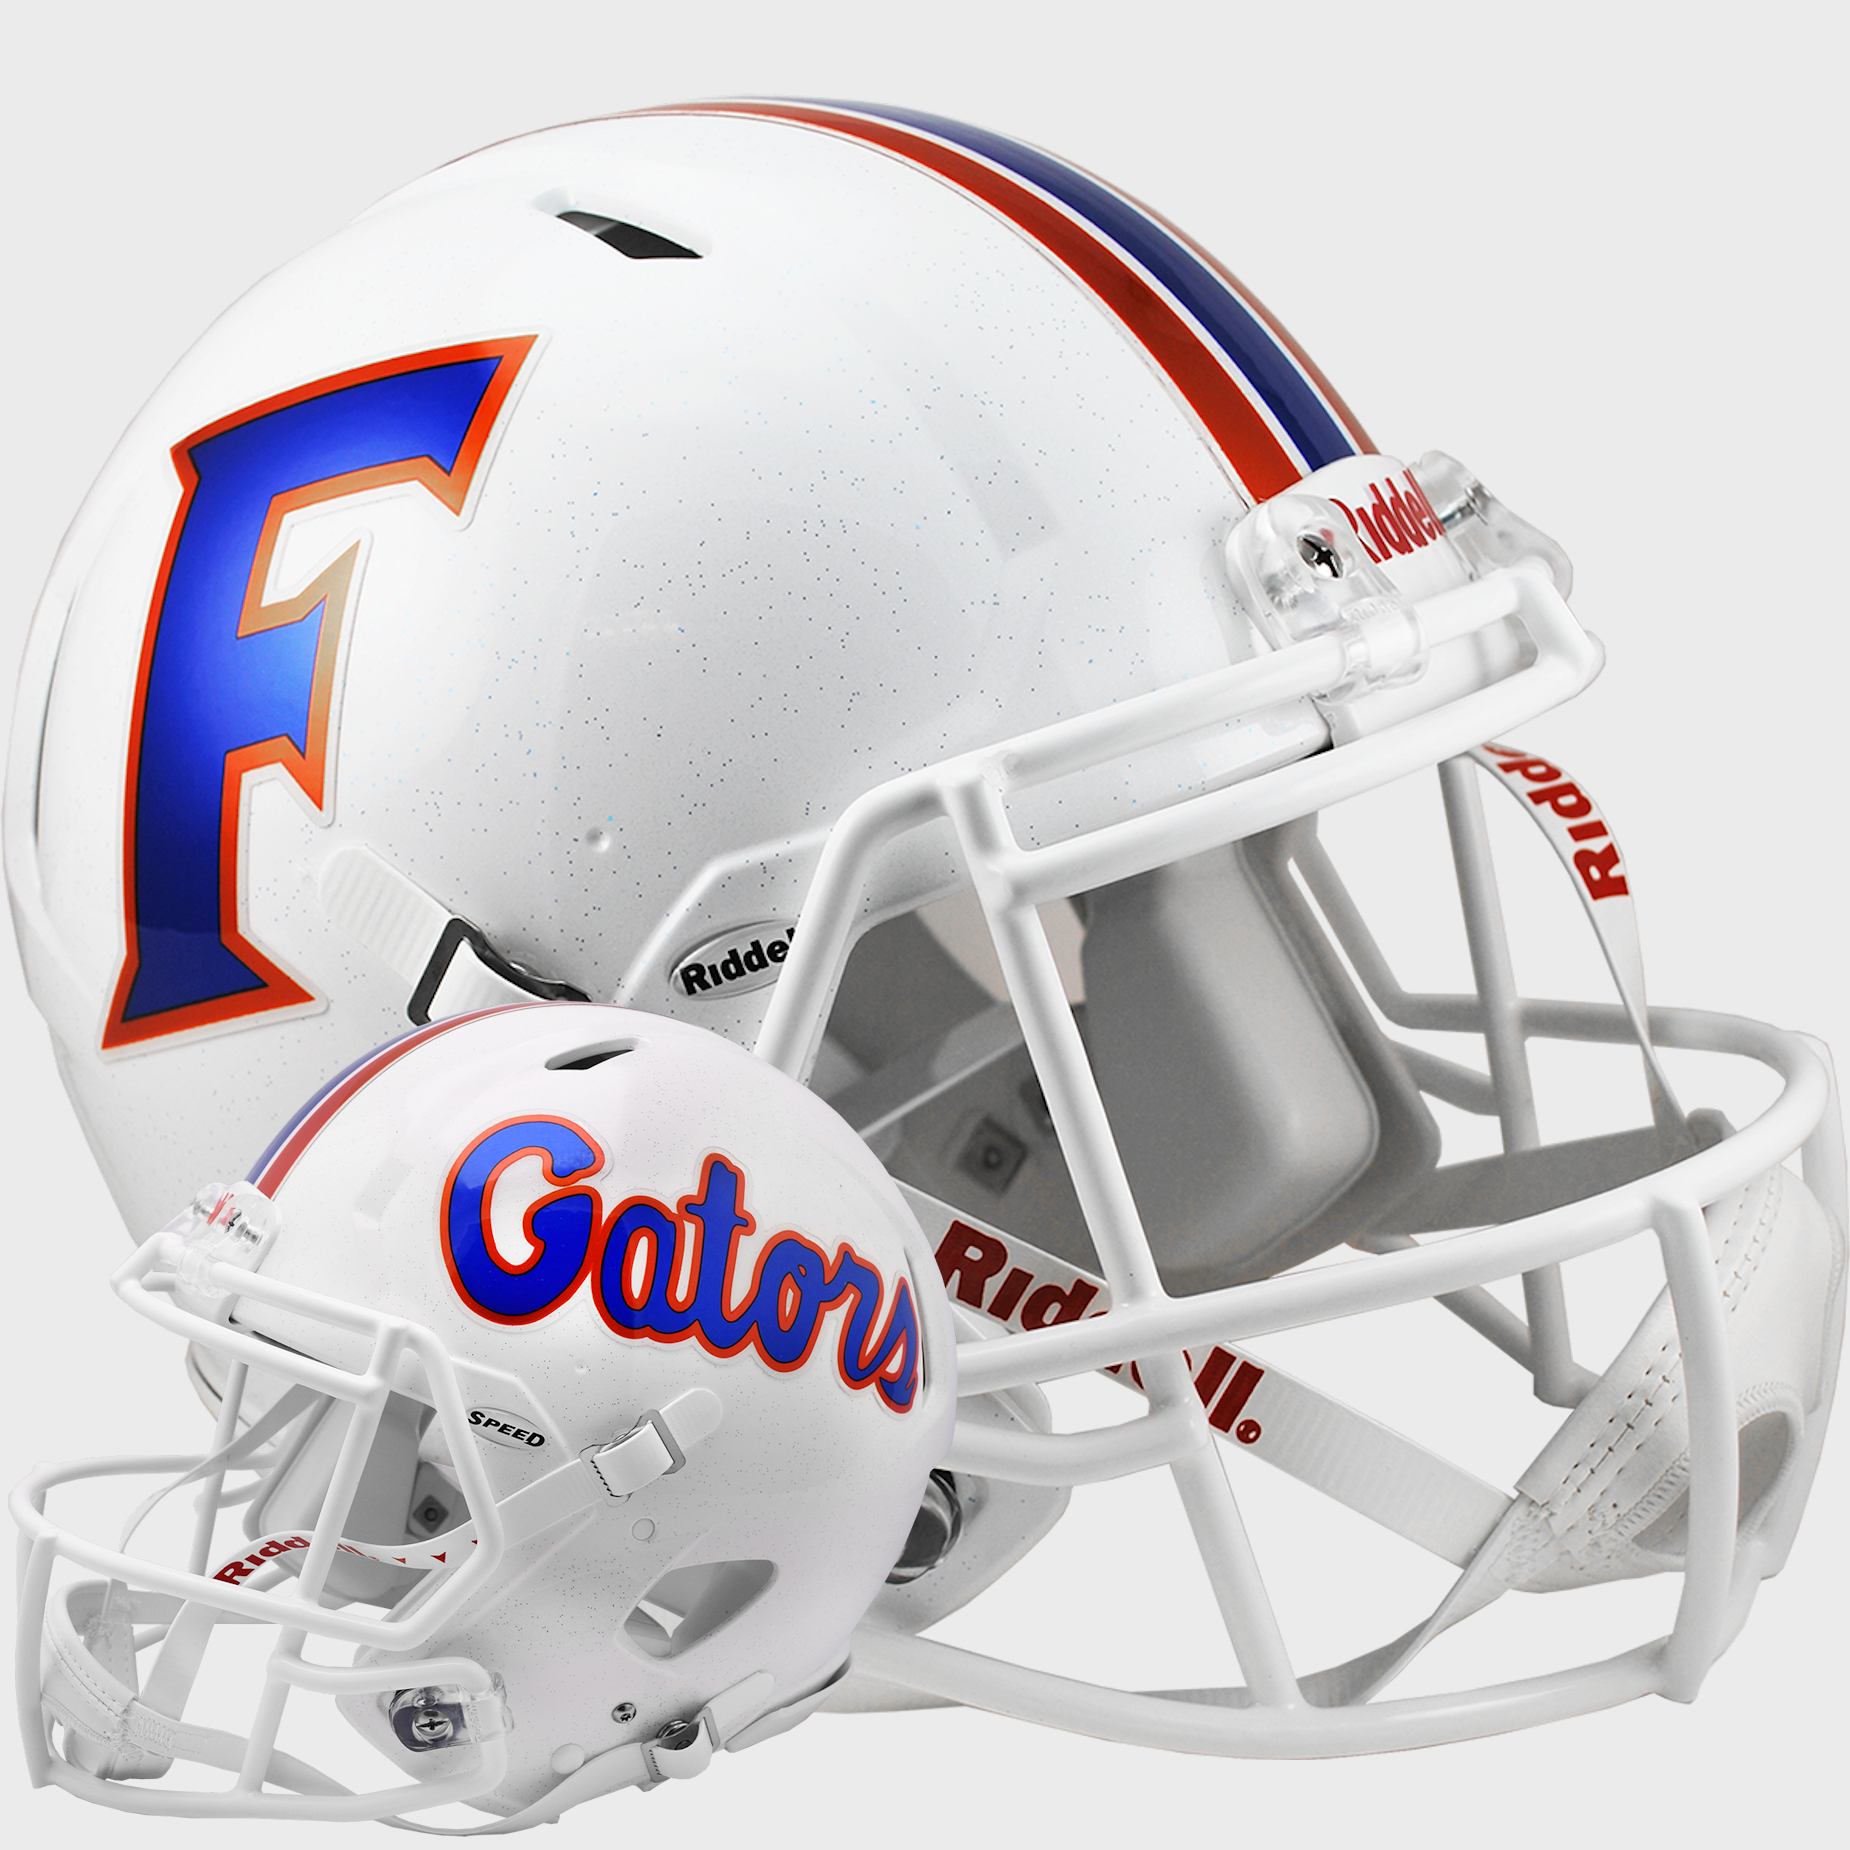 Florida Gators Speed Football Helmet <B>2015 White</B>